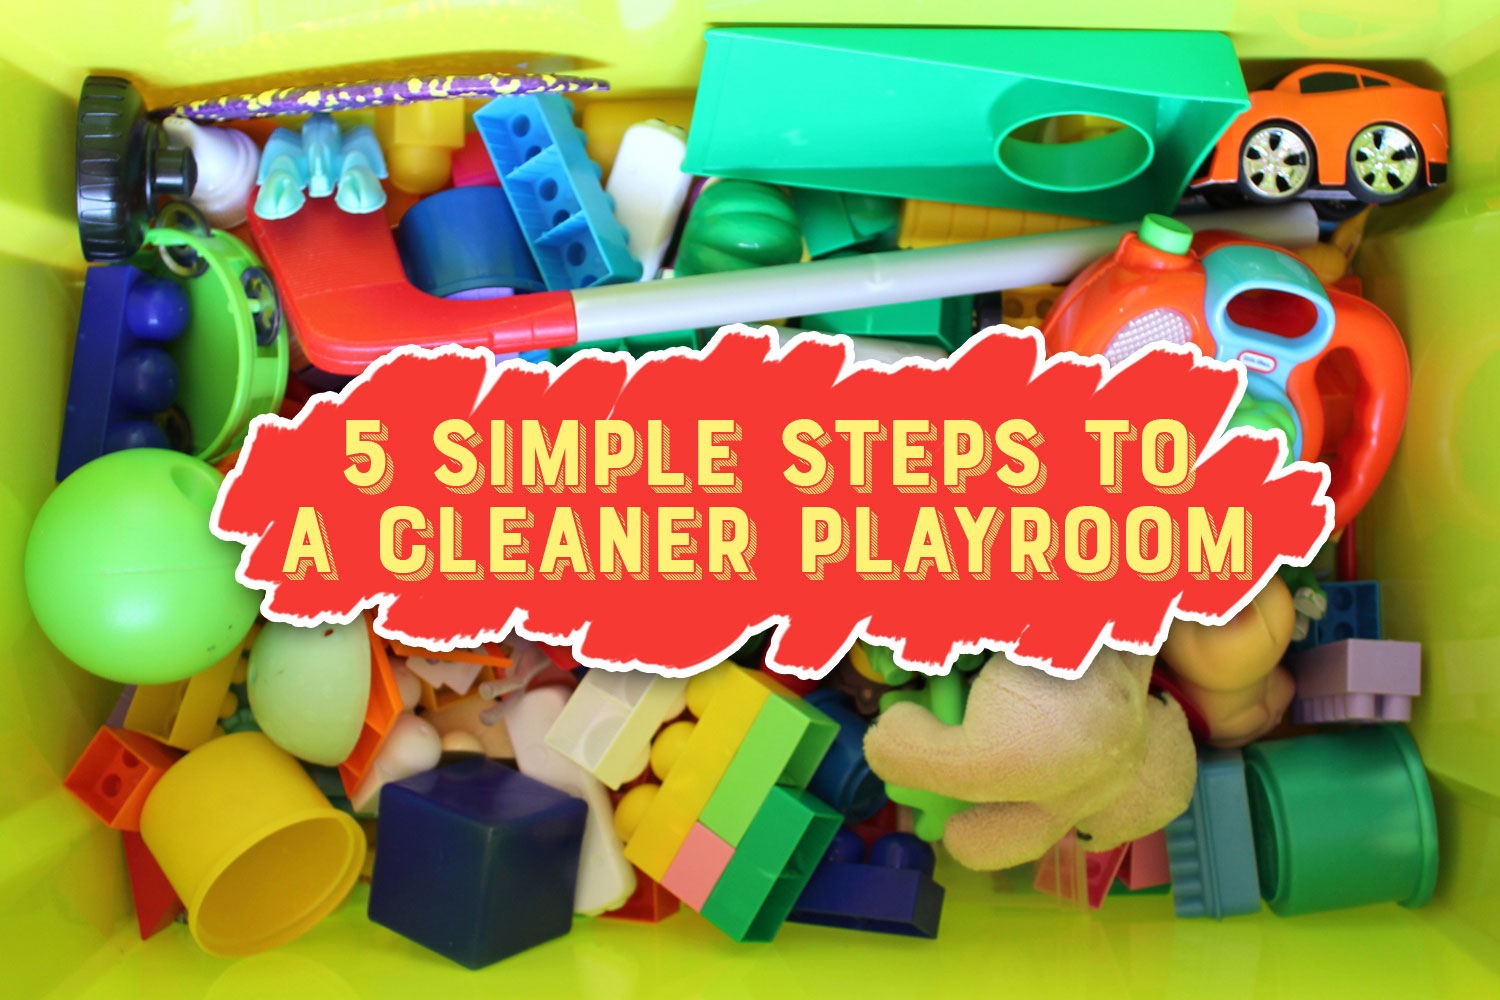 5 things I'm doing differently to organize my playroom (and keep it tidy)